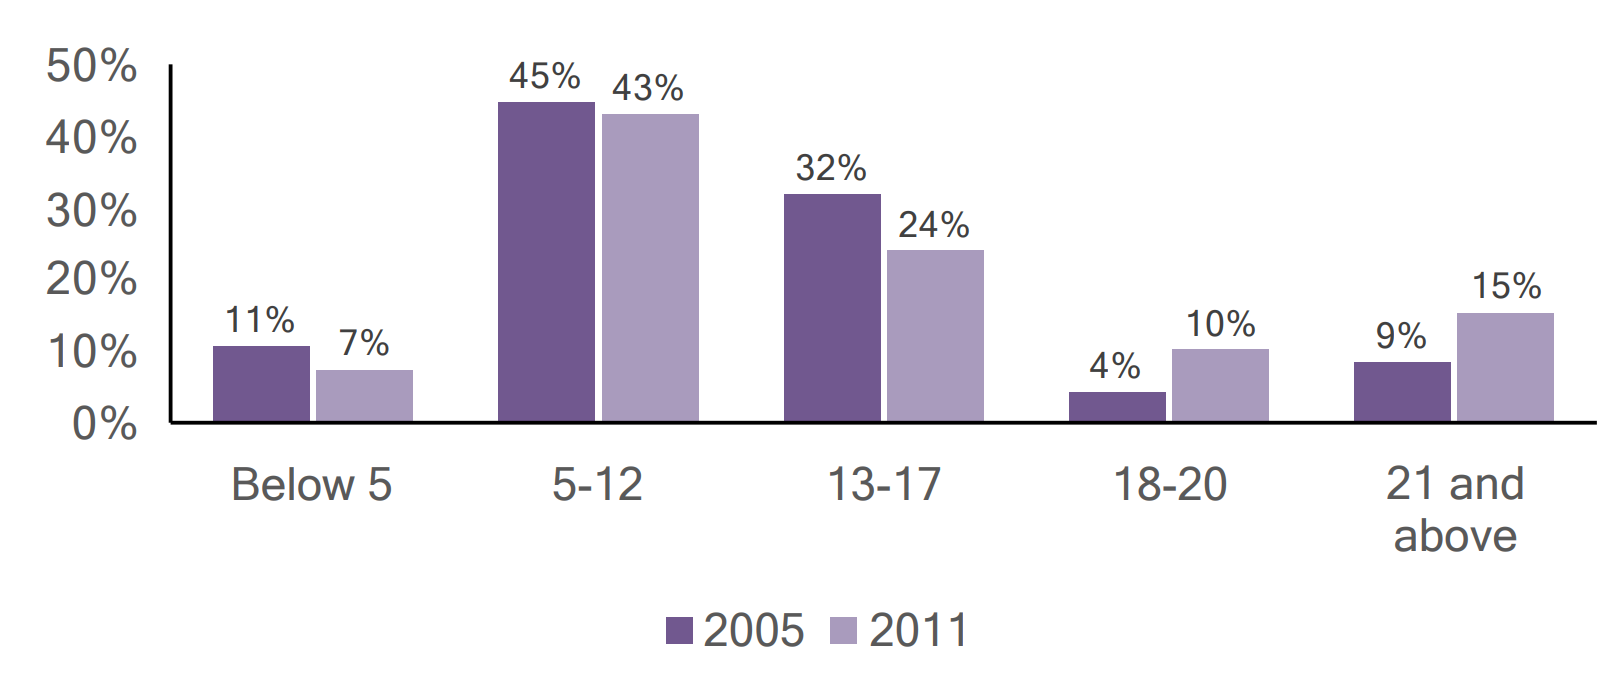 Bar graph of individuals with autism in Clarion county by age, comparing 2005 and 2011 data.